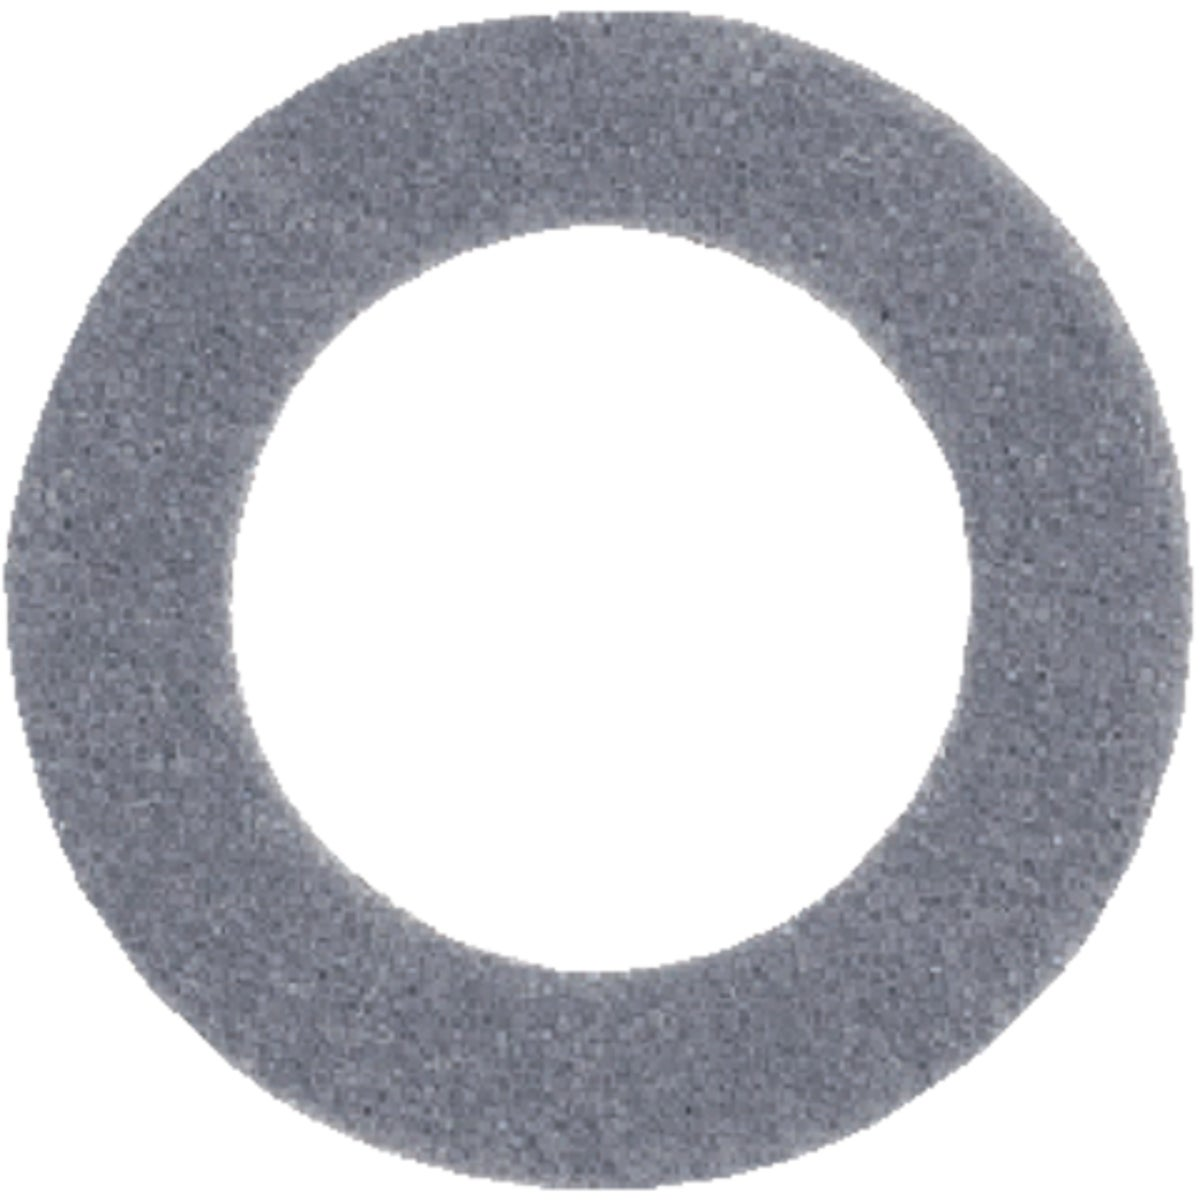 FIBRE BIBB GASKET - 35311B by Danco Perfect Match